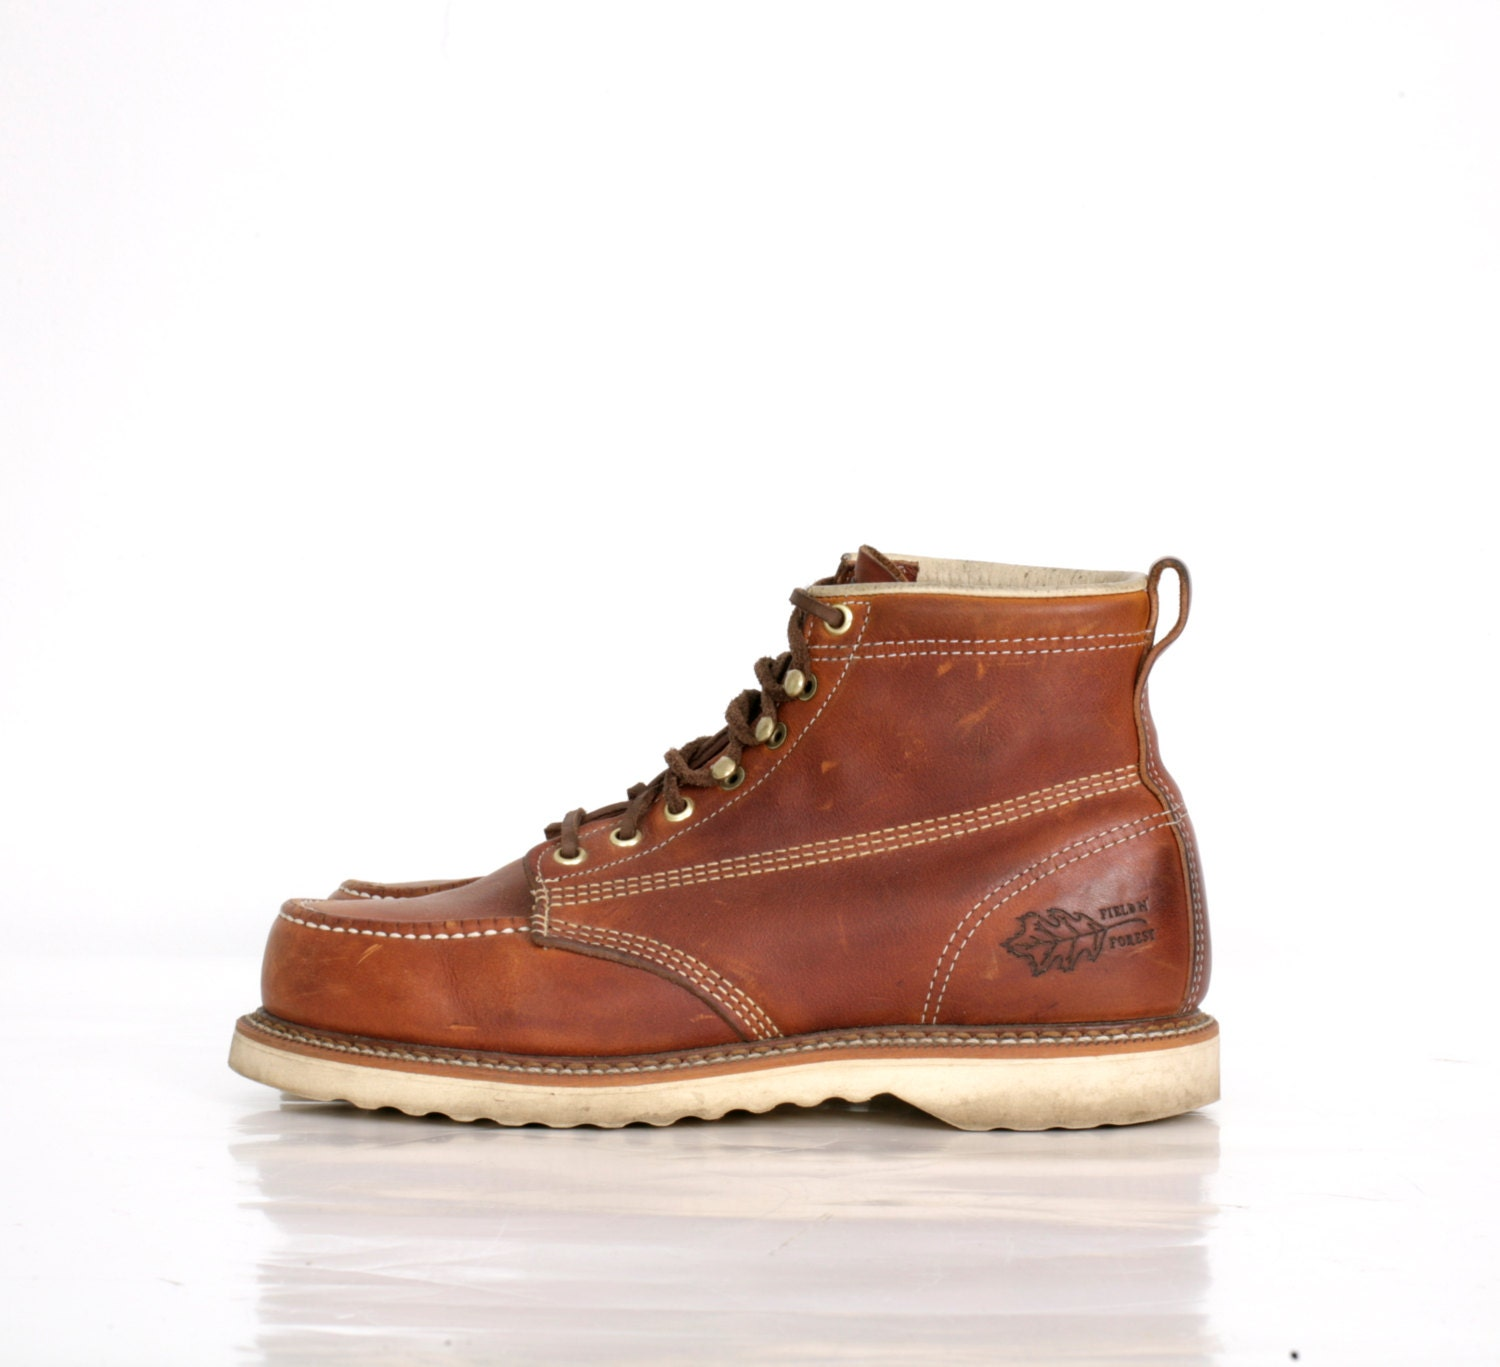 Vintage Work Boots Hiking By Field And Forest Mens 8